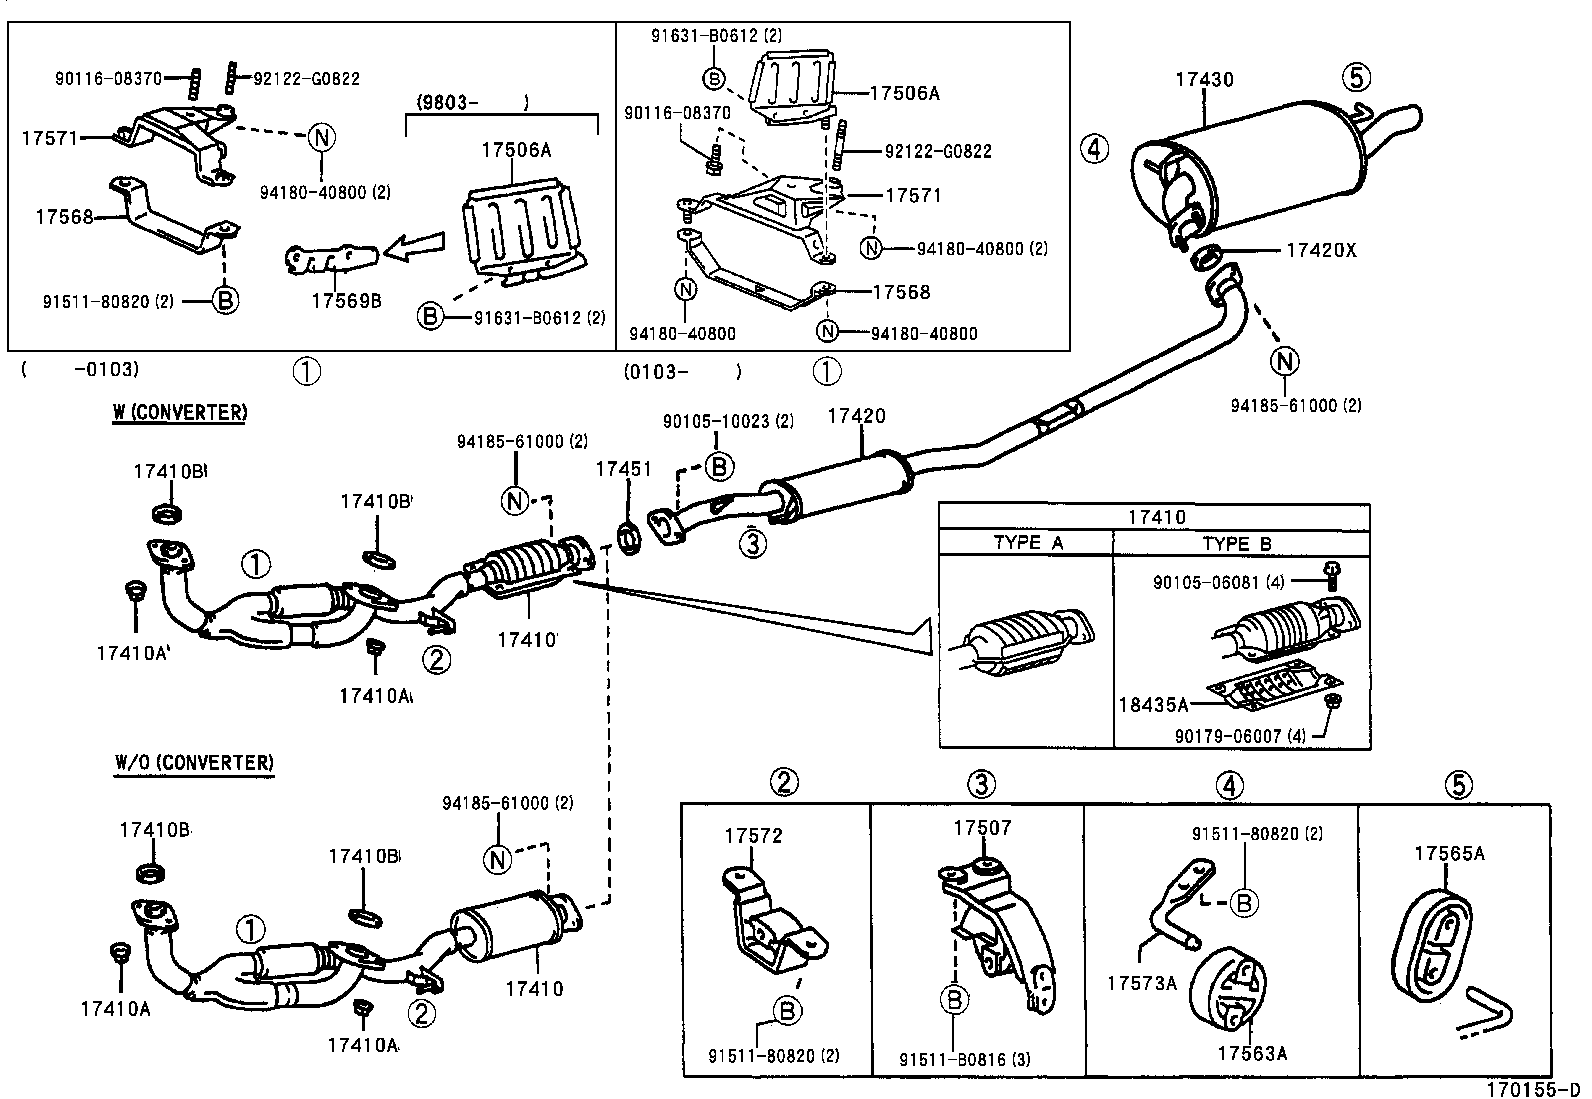 2000 Camry Fuel System Diagram on 2003 Highlander Exhaust System